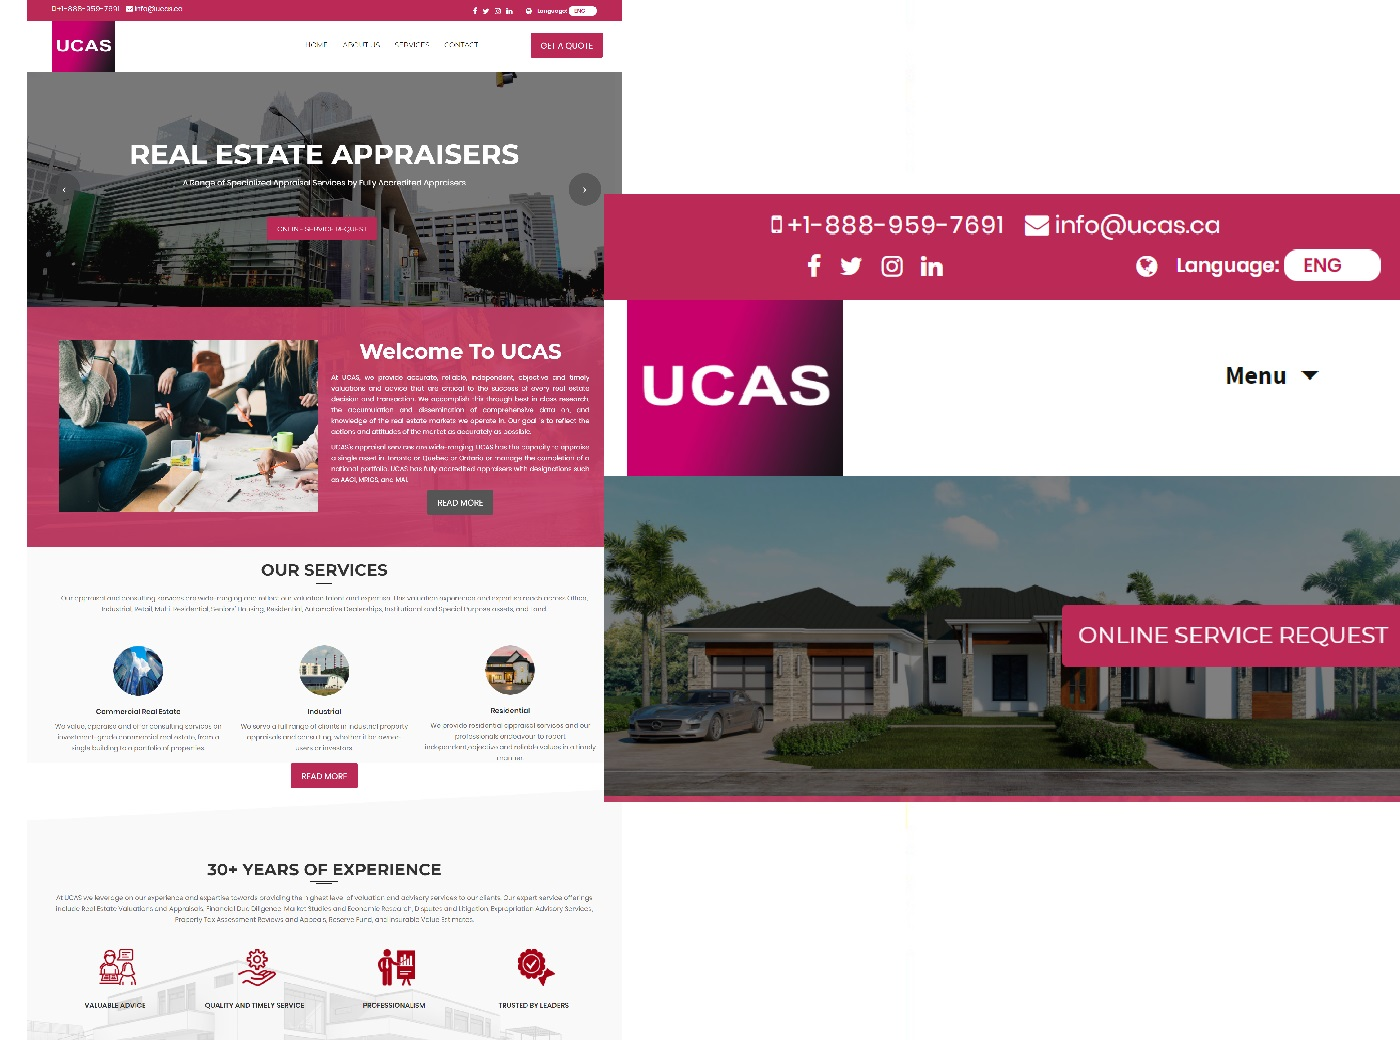 UCAS Featured image